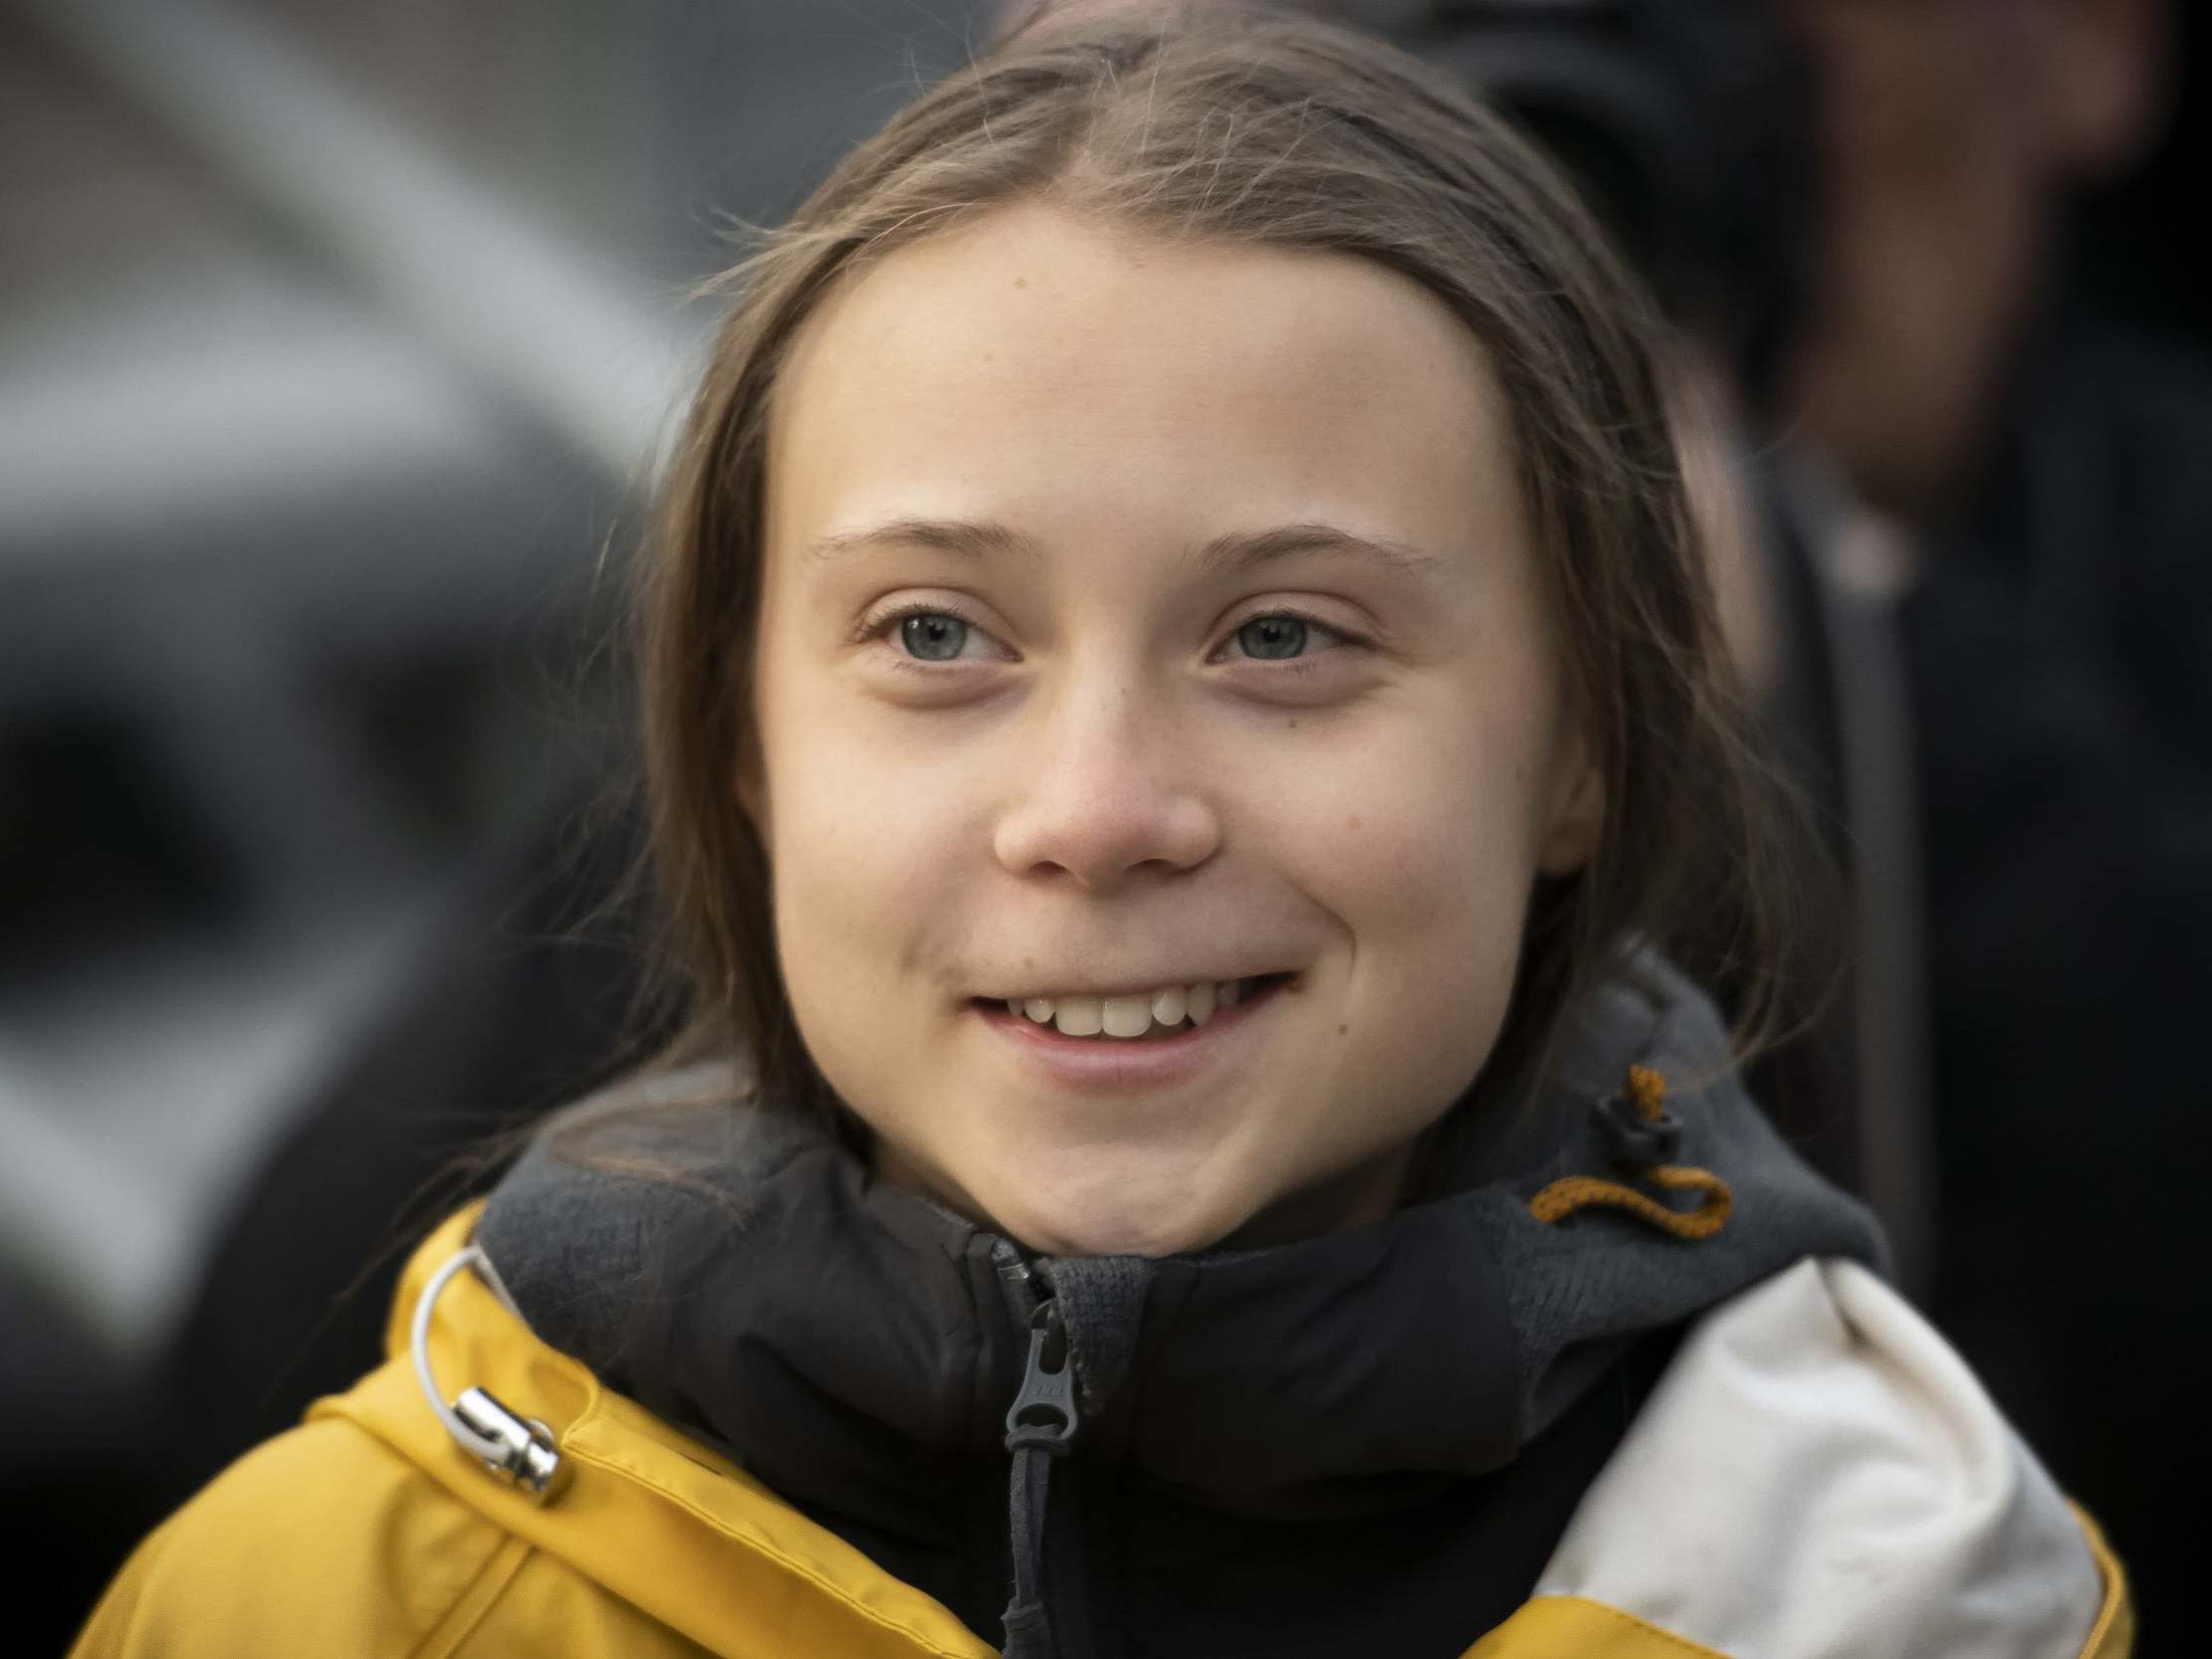 Greta Thunberg says she 'needs a rest' as she heads home to Sweden after year of global climate activism